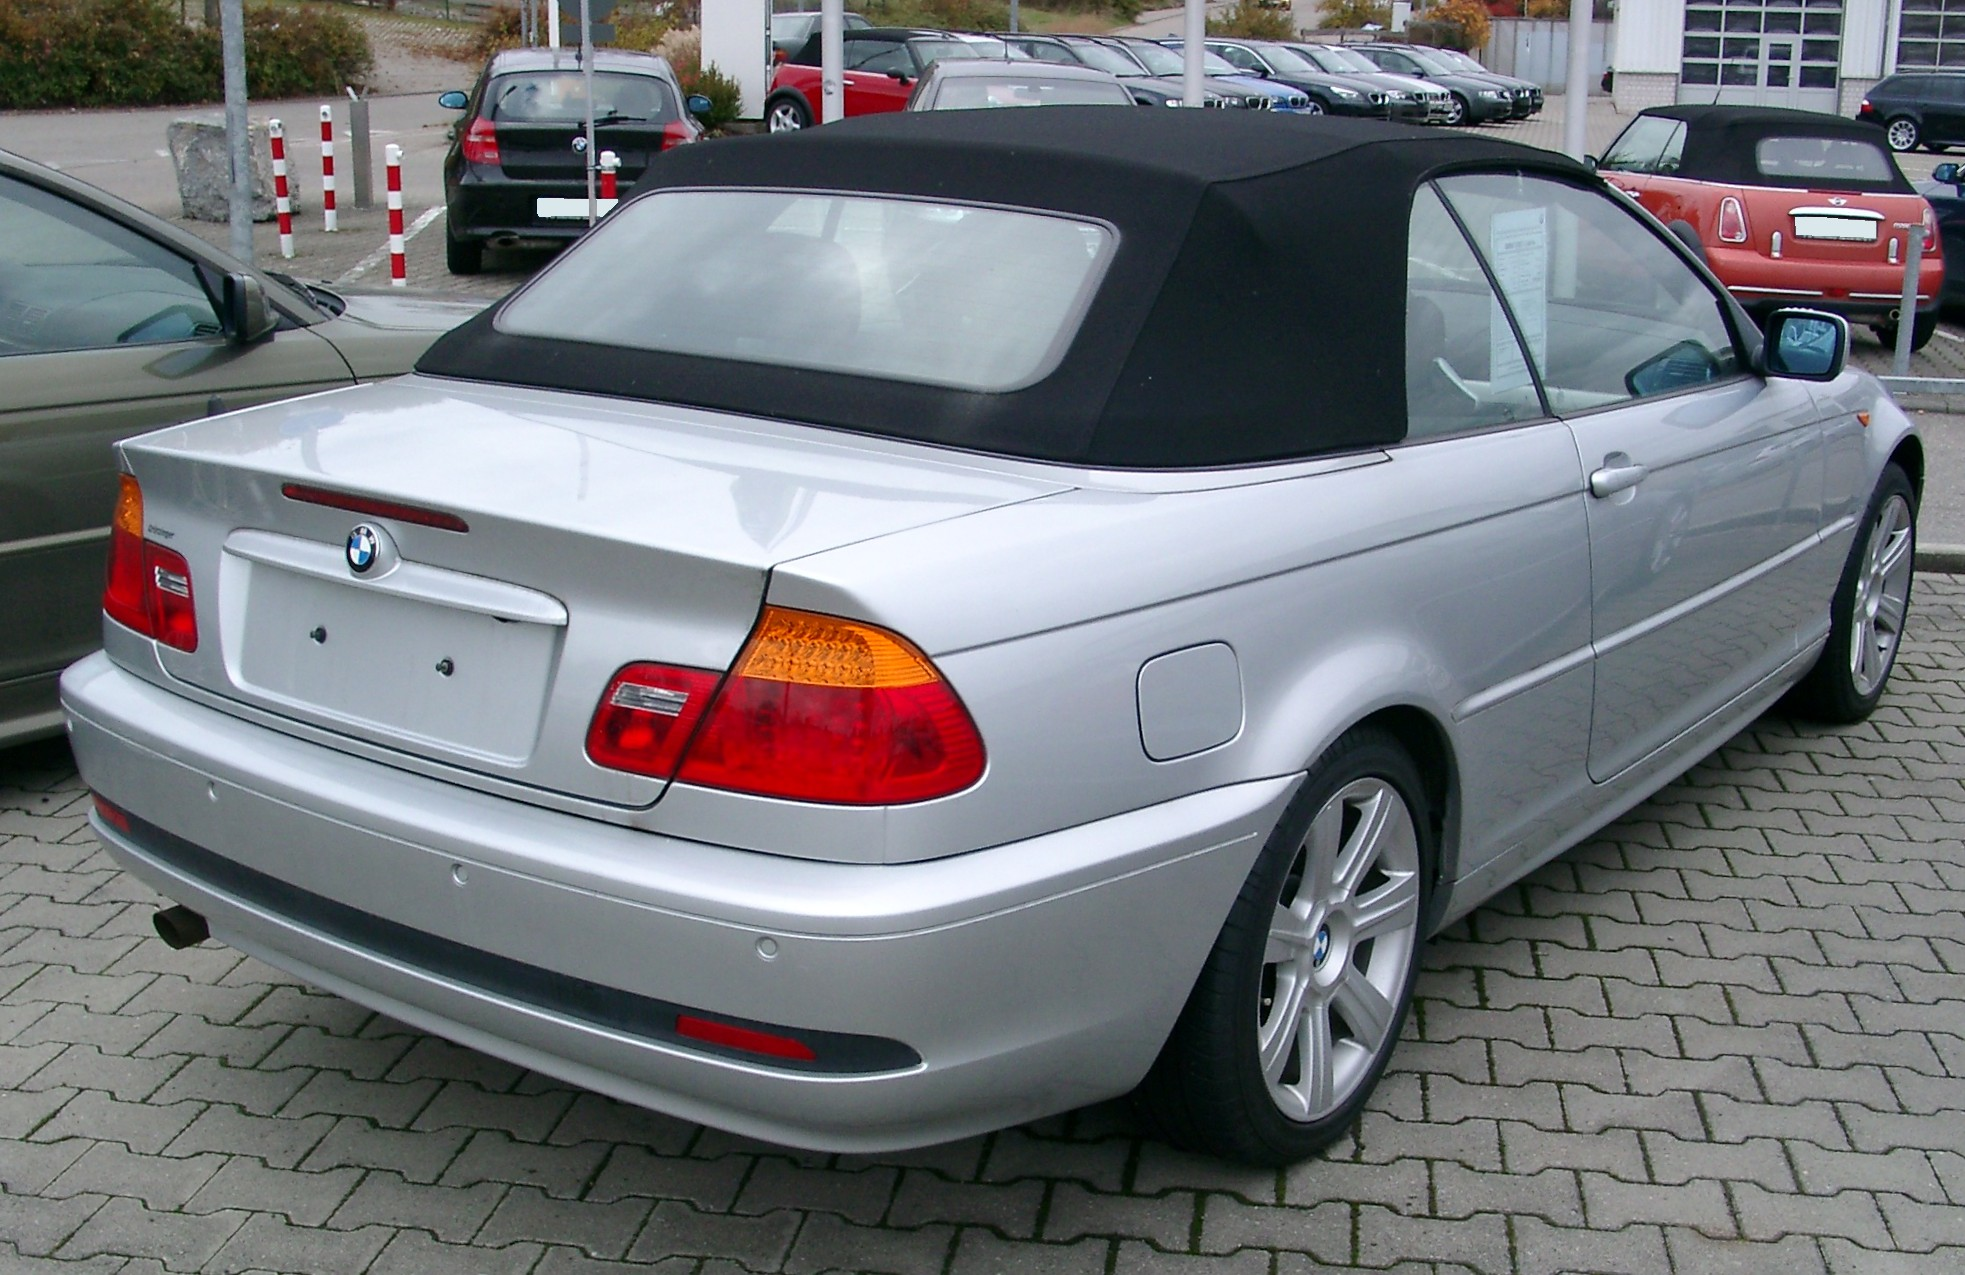 file bmw e46 cabrio rear wikimedia commons. Black Bedroom Furniture Sets. Home Design Ideas